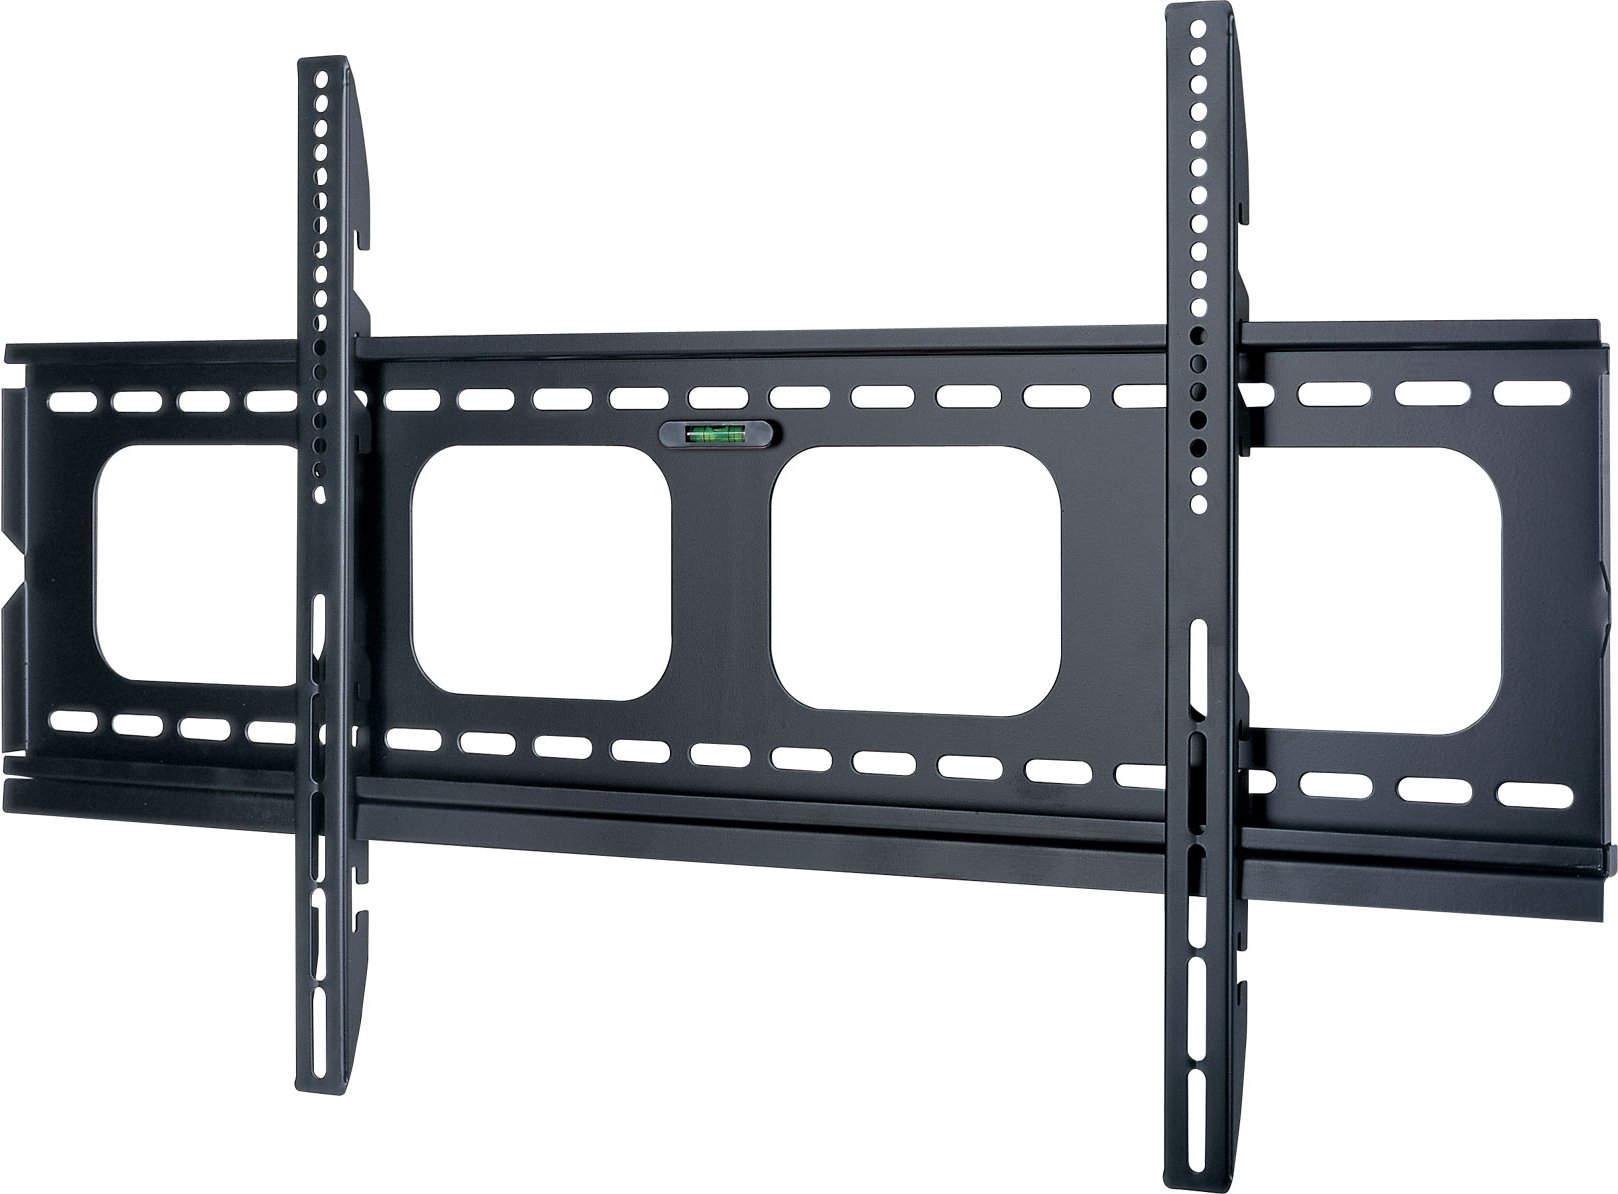 The Plasma Centre Tv Stands Tv Wall Mount Brackets Furniture  # Meuble Tv Support Tv